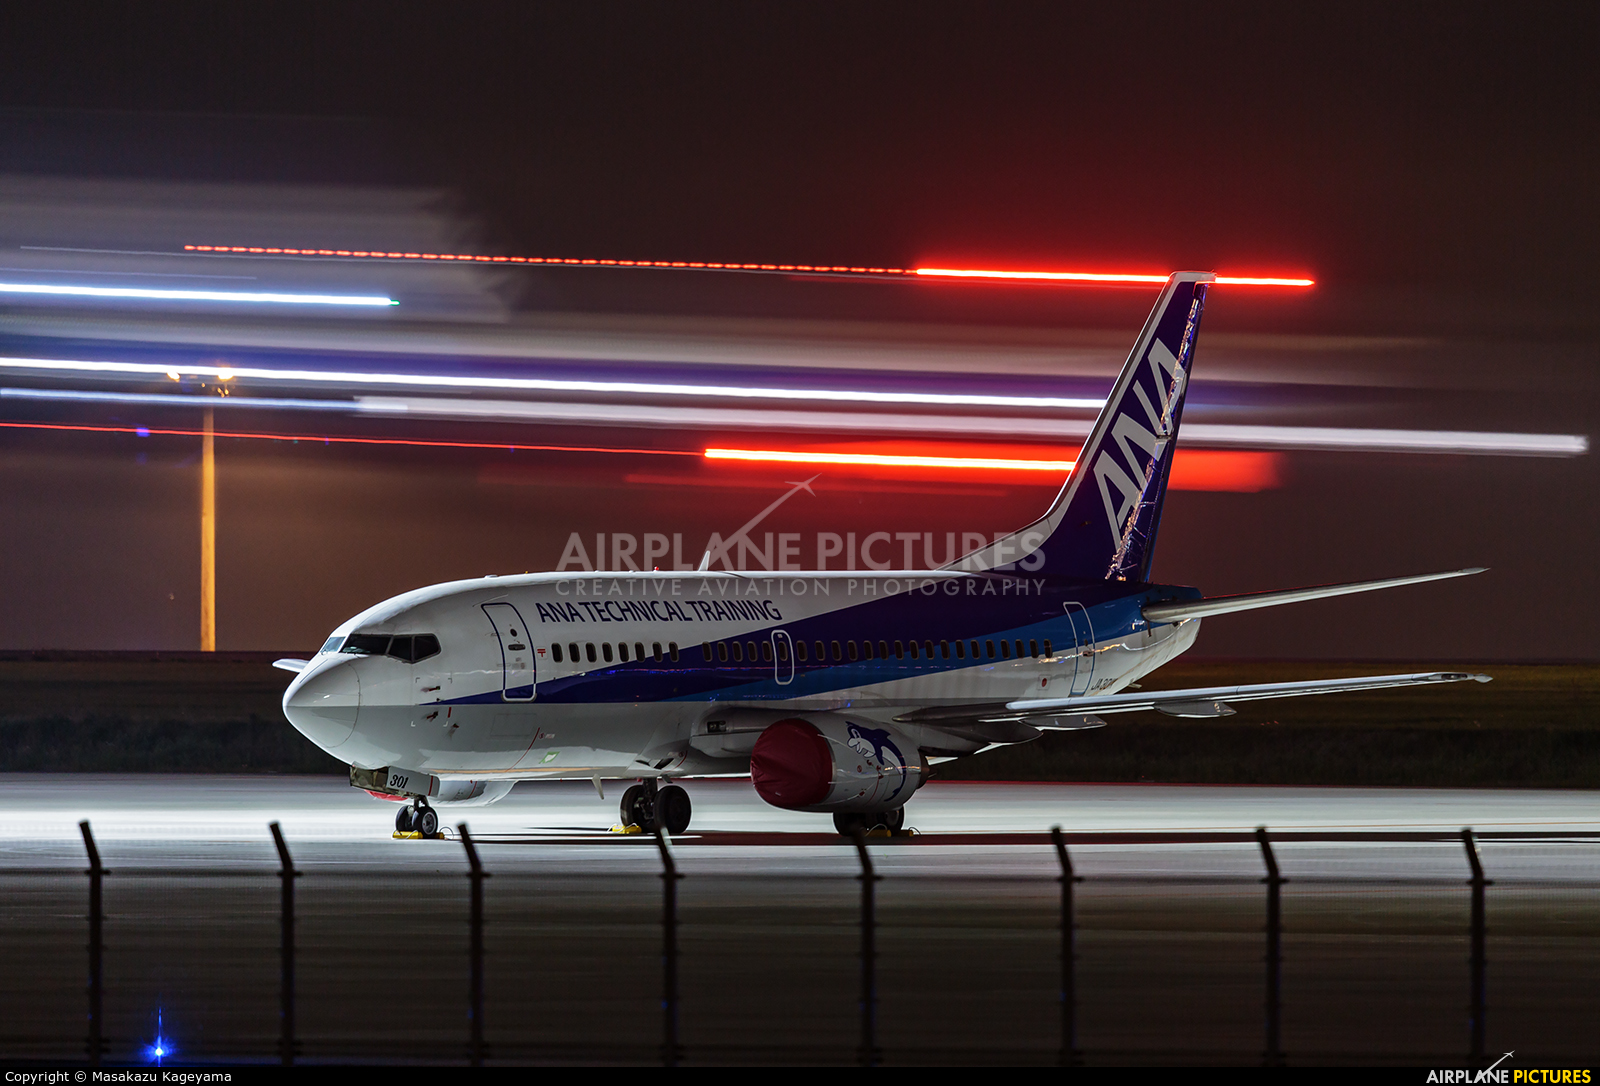 ANA - All Nippon Airways JA301K aircraft at Tokyo - Haneda Intl